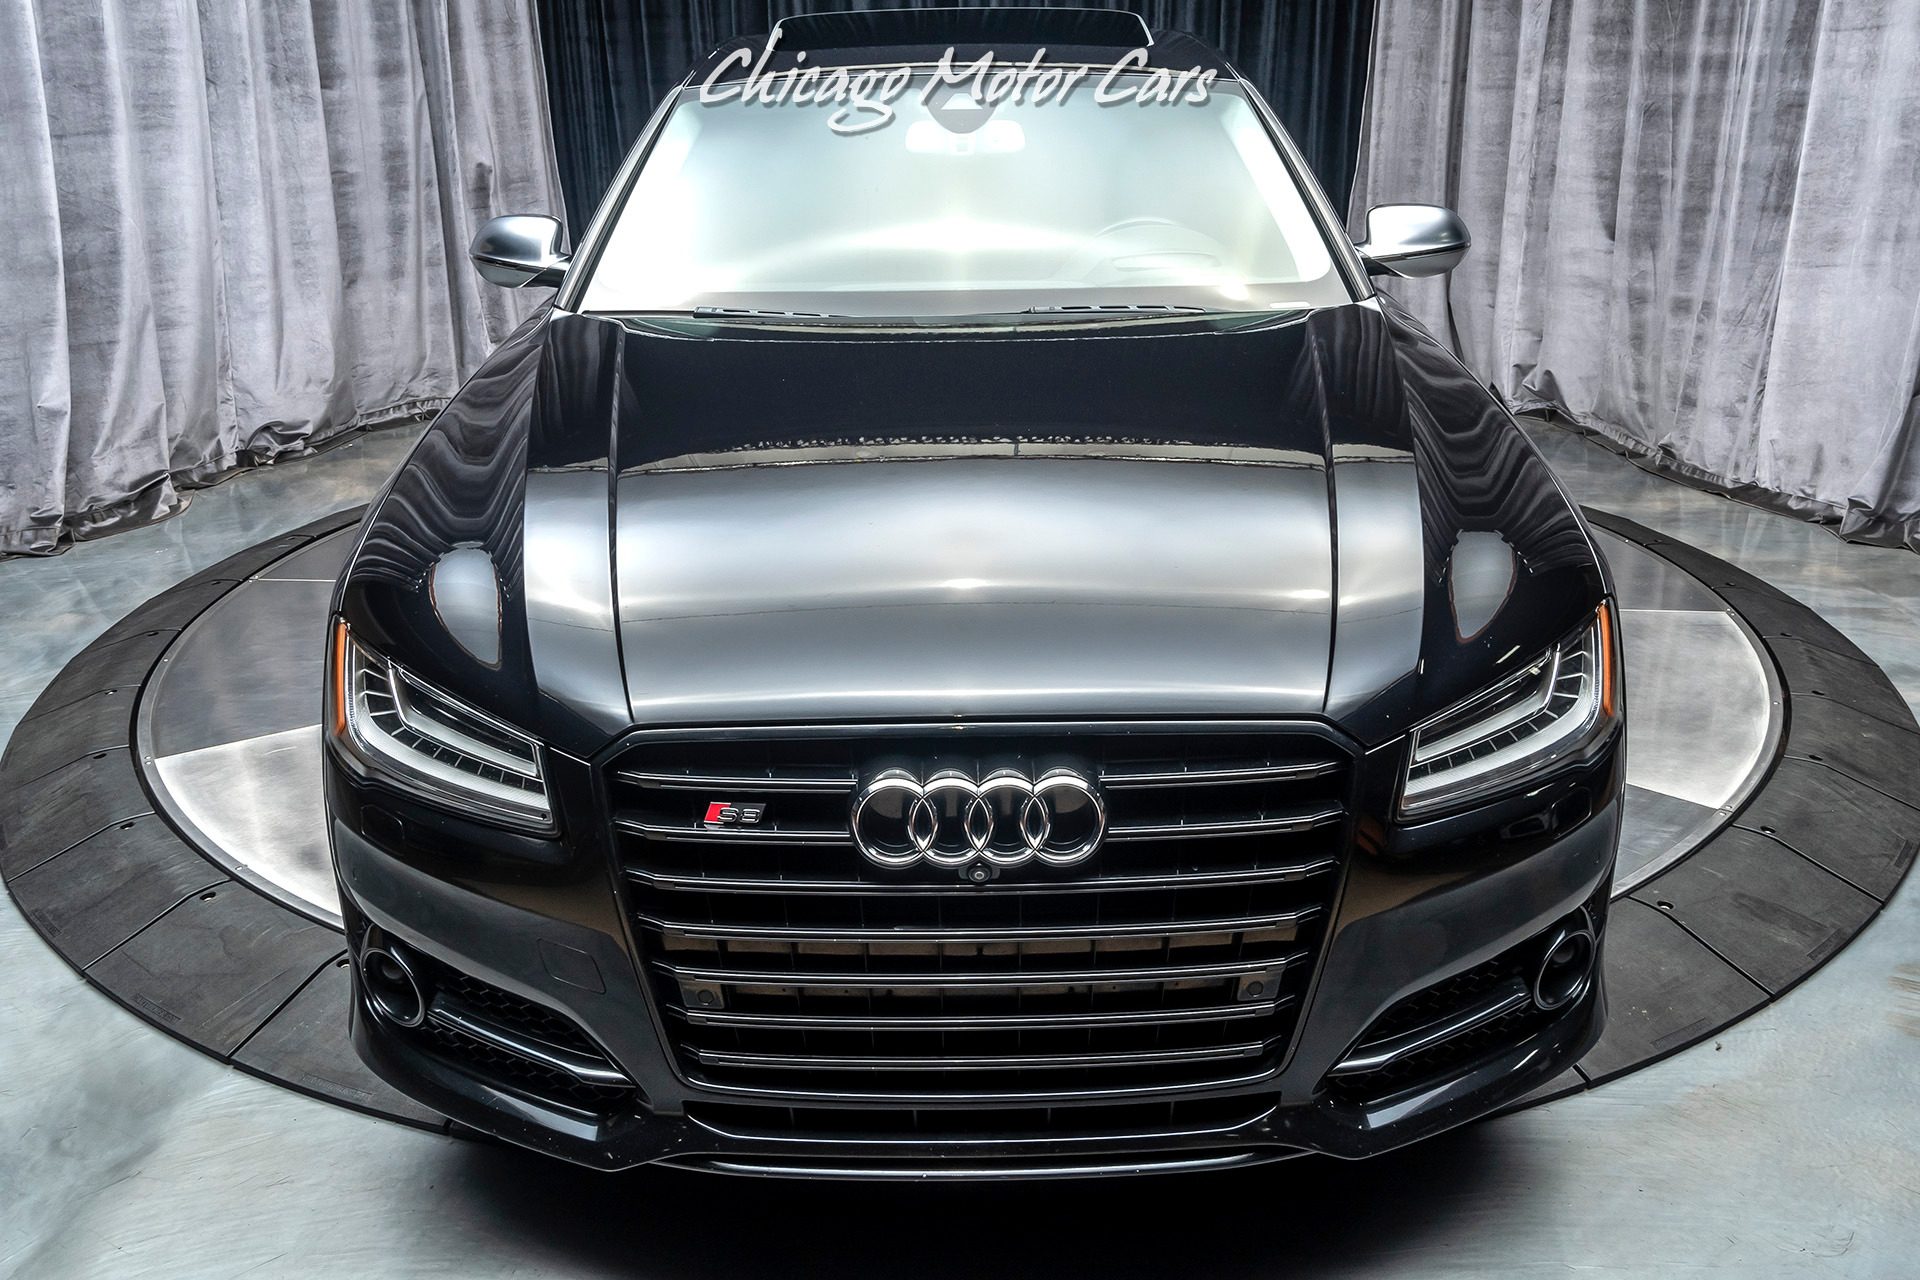 Used-2015-Audi-S8-40T-Quattro-Sedan-MSRP-119K-DRIVER-ASSISTANCE-PACKAGE